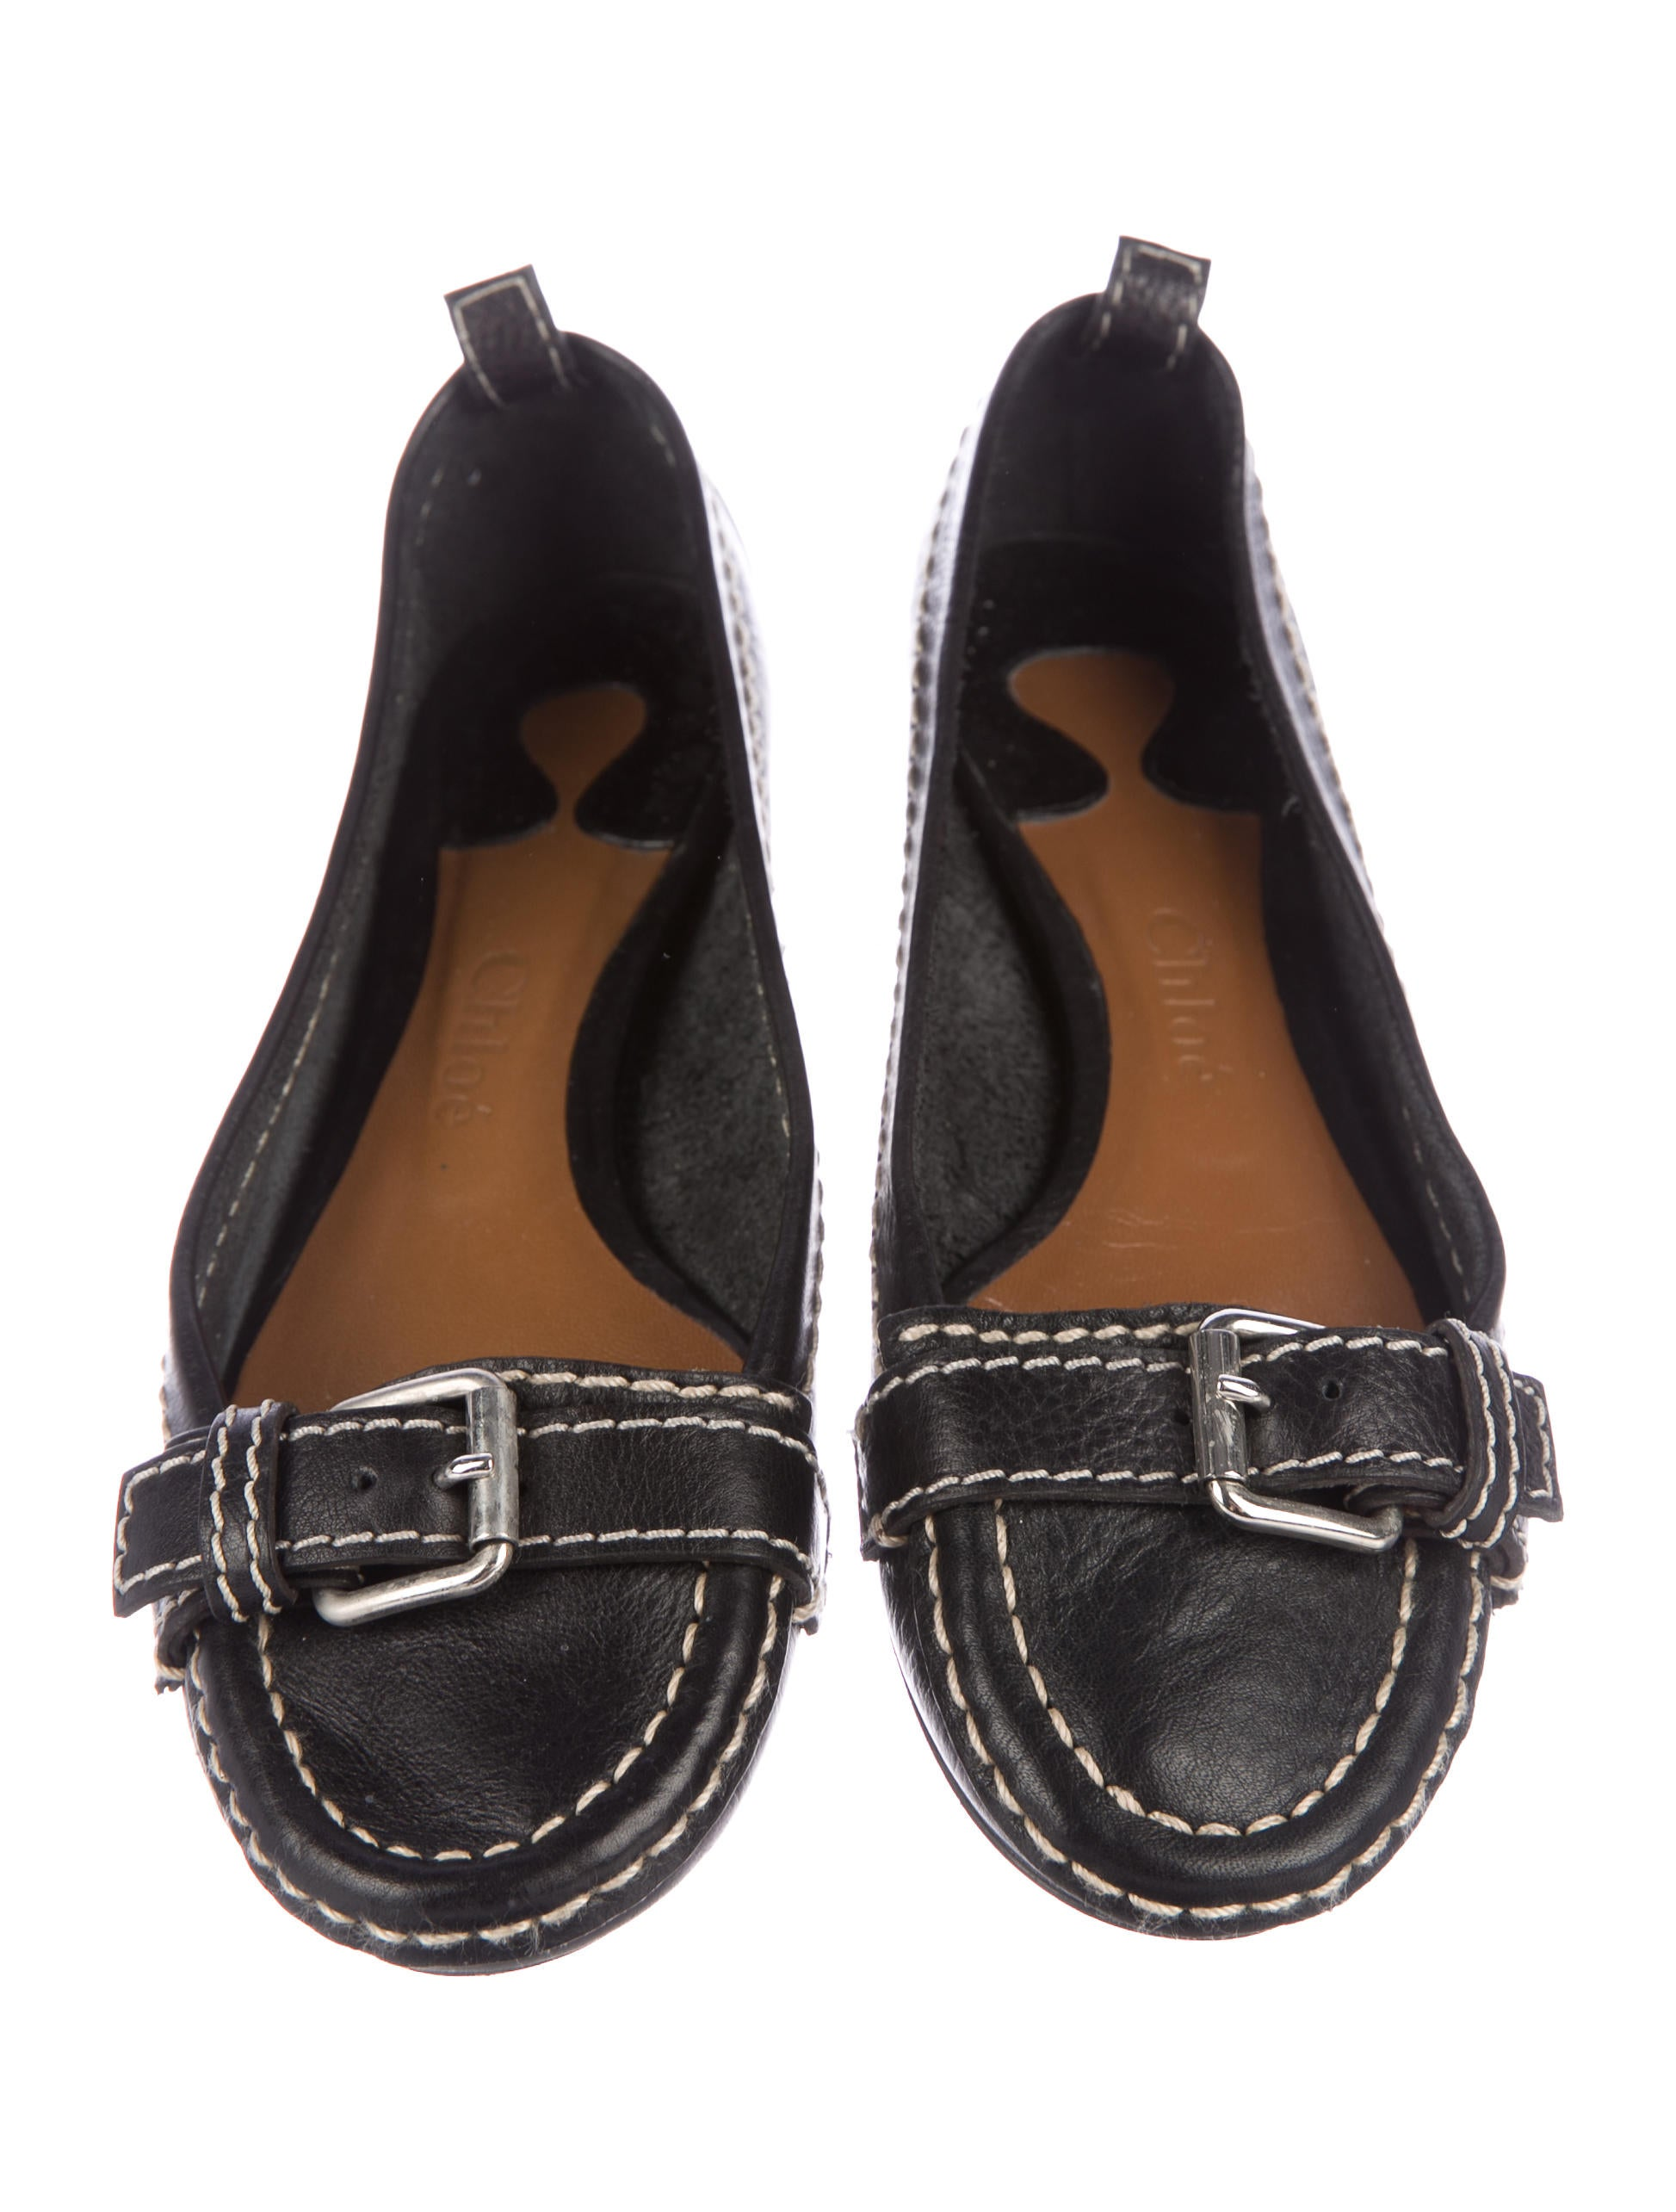 Chloé Leather Buckle-Accented Flats sale pick a best cheap for nice sale genuine looking for for sale free shipping pick a best kt7v7hkIgB